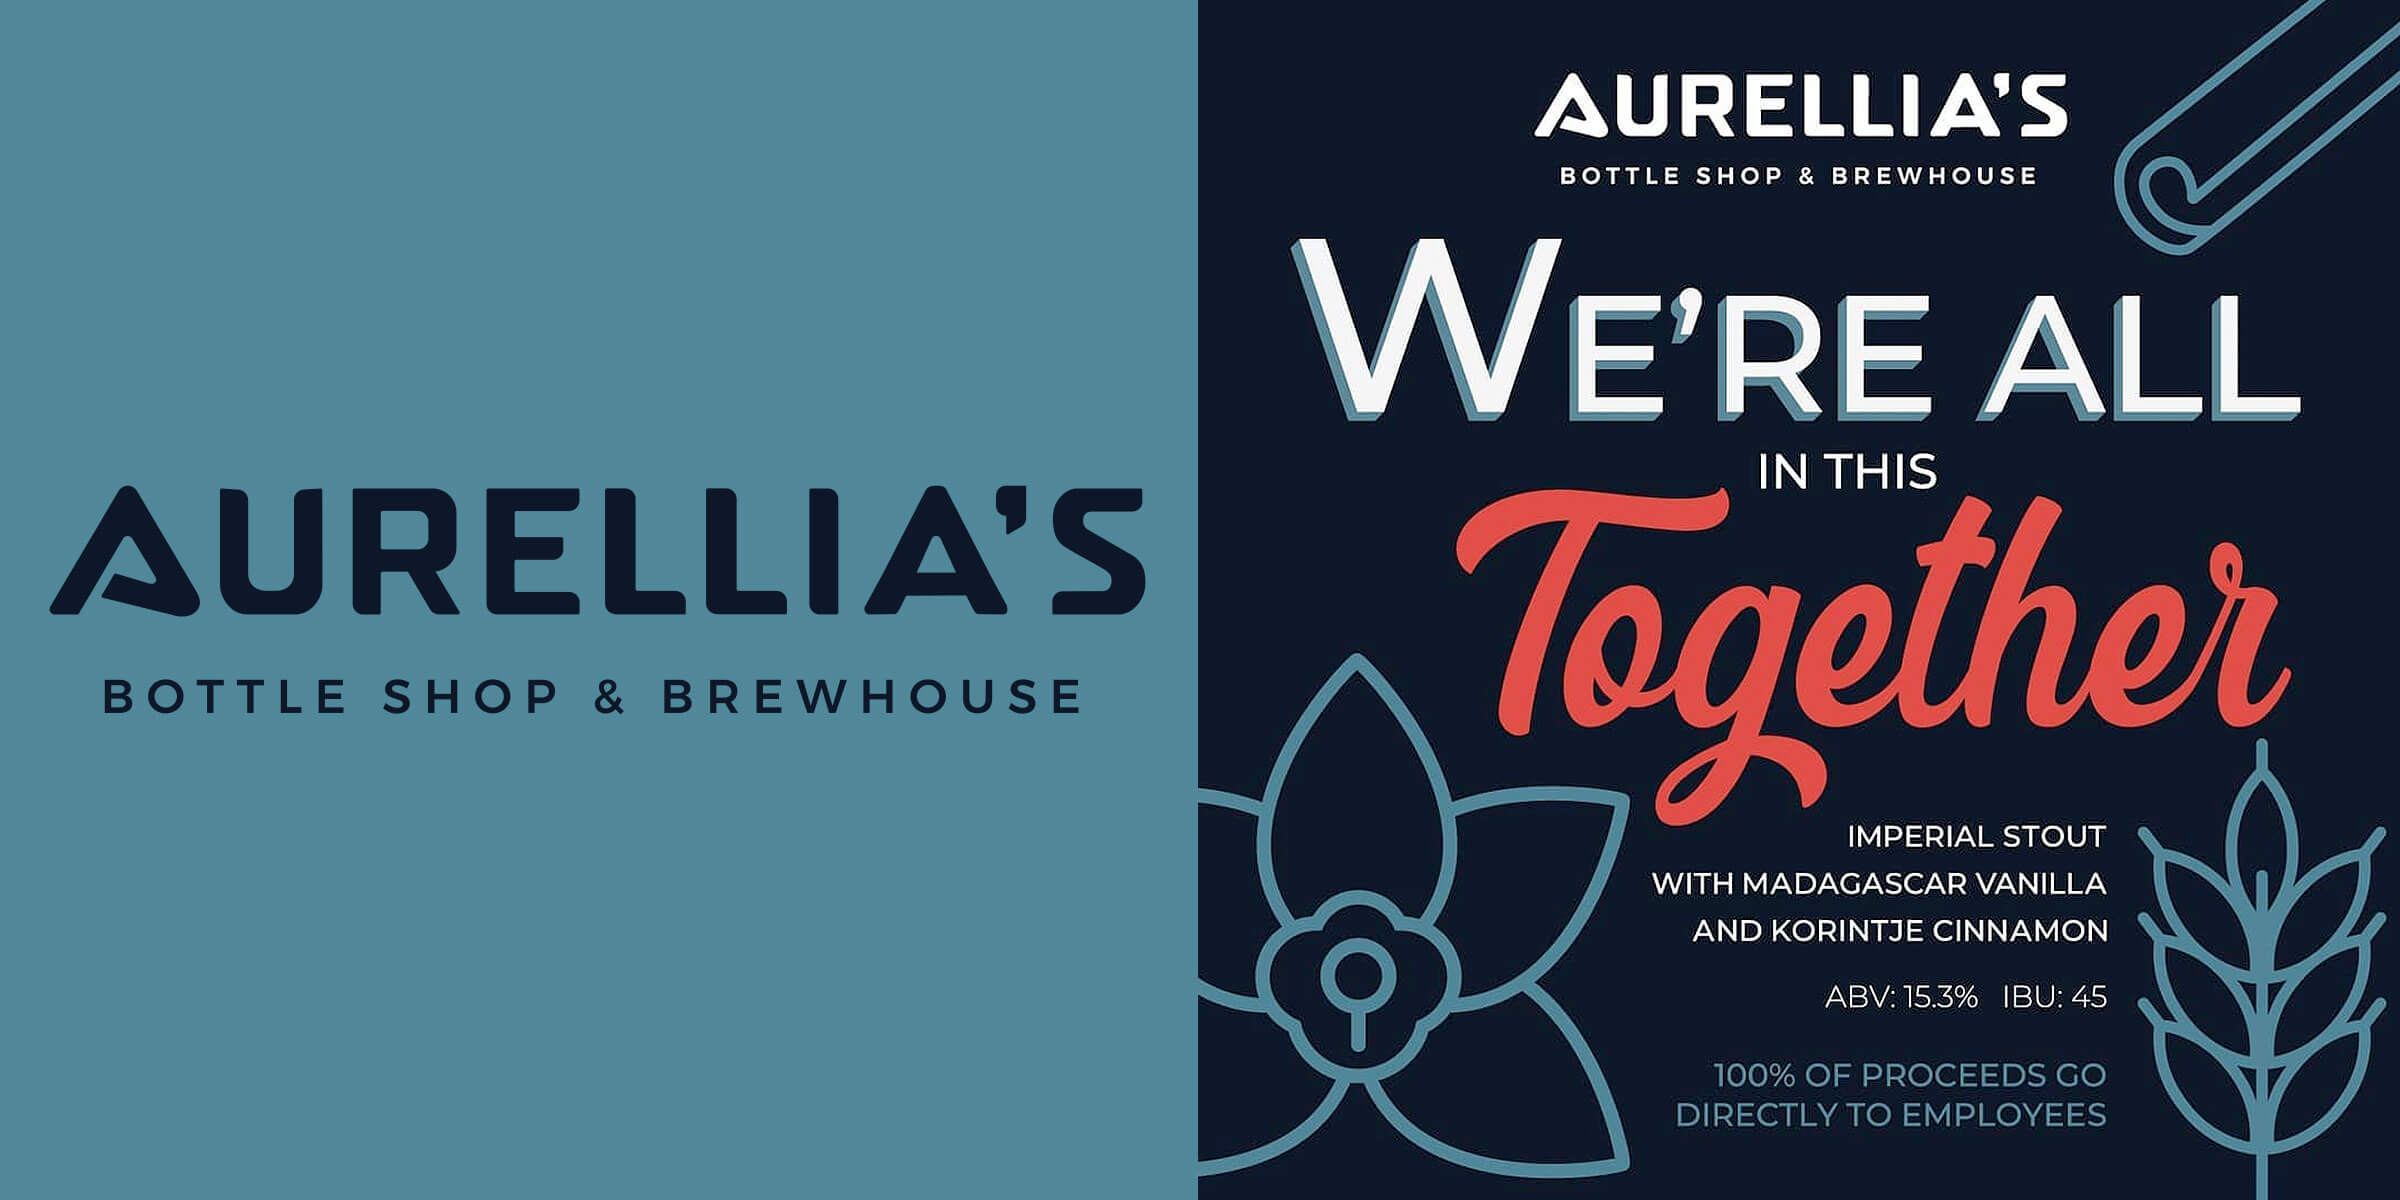 """Aurellia's Bottle Shop & Brewhouse will brew """"We're All In This Together"""", an American Imperial Stout, with 100% of proceeds going to employees."""